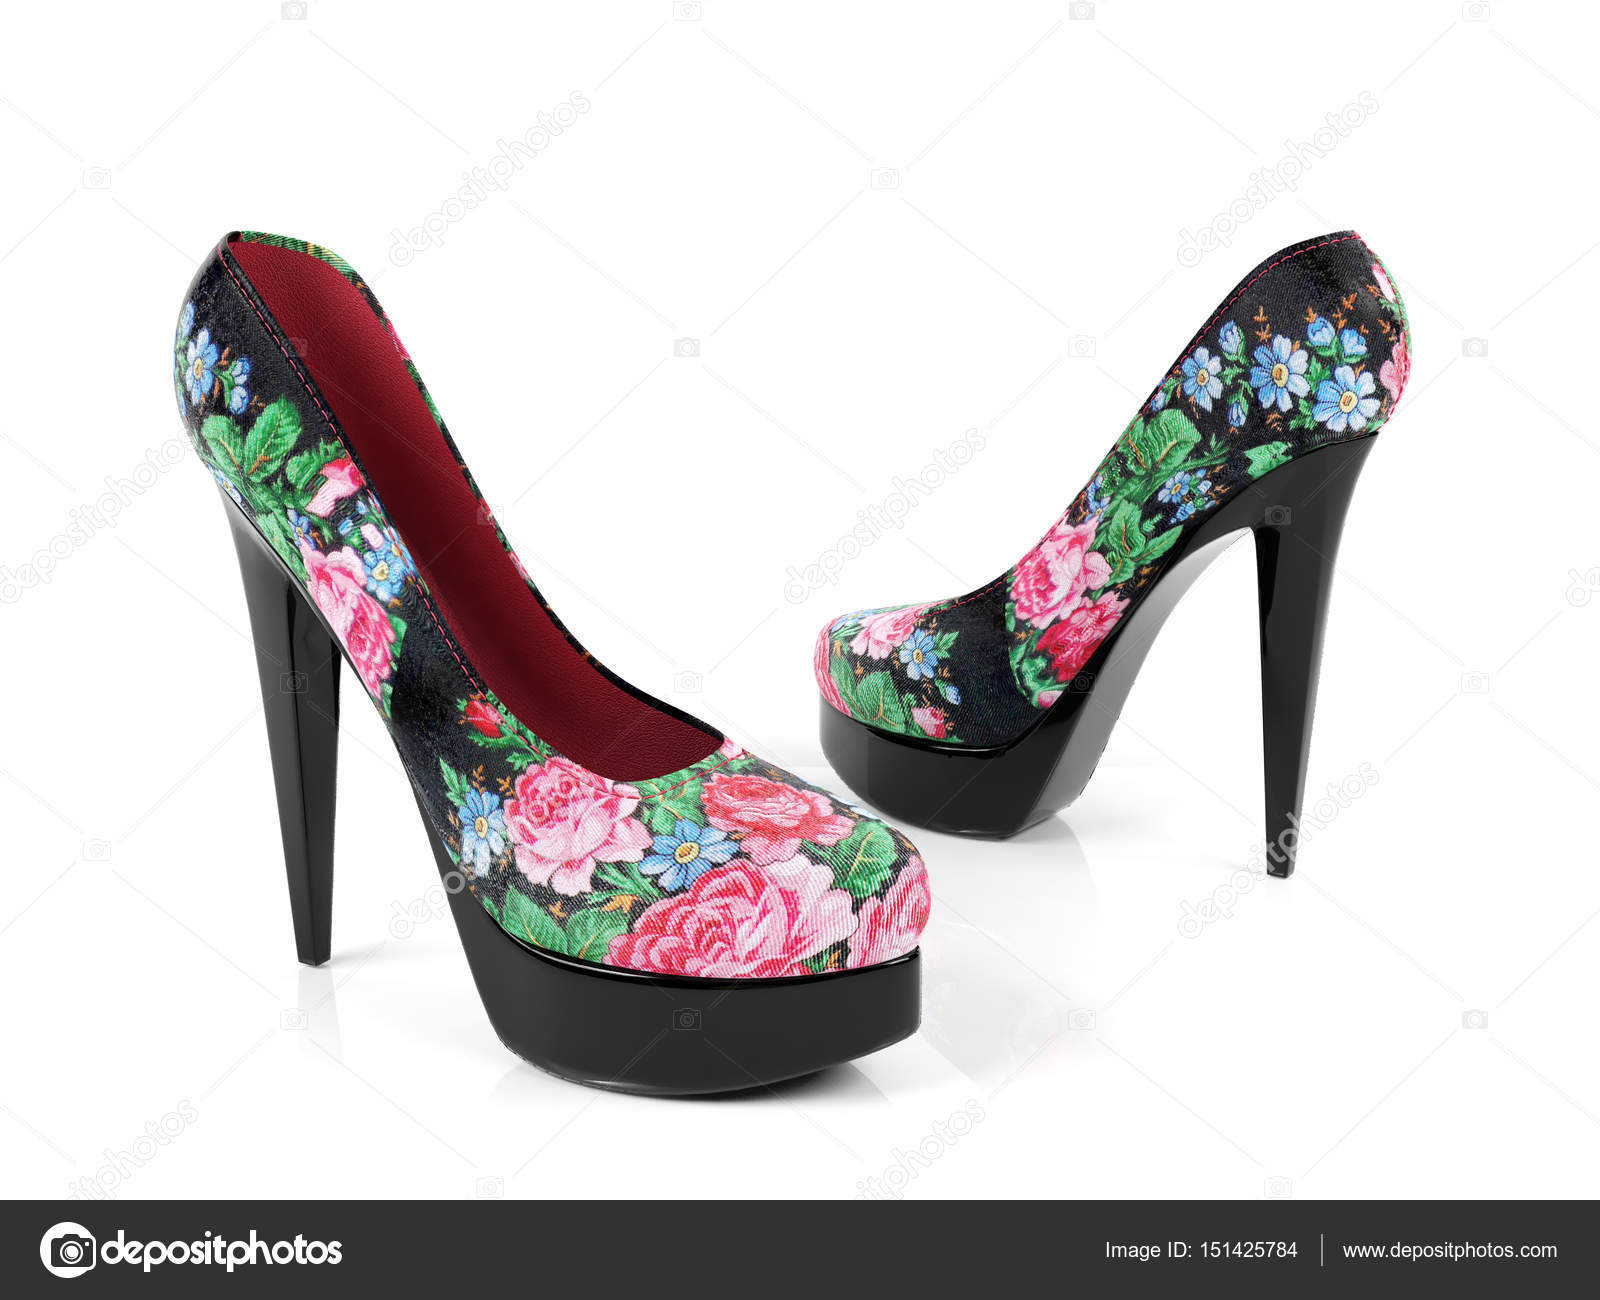 Female High Heeled Shoes With Flower Pattern Isolated On White